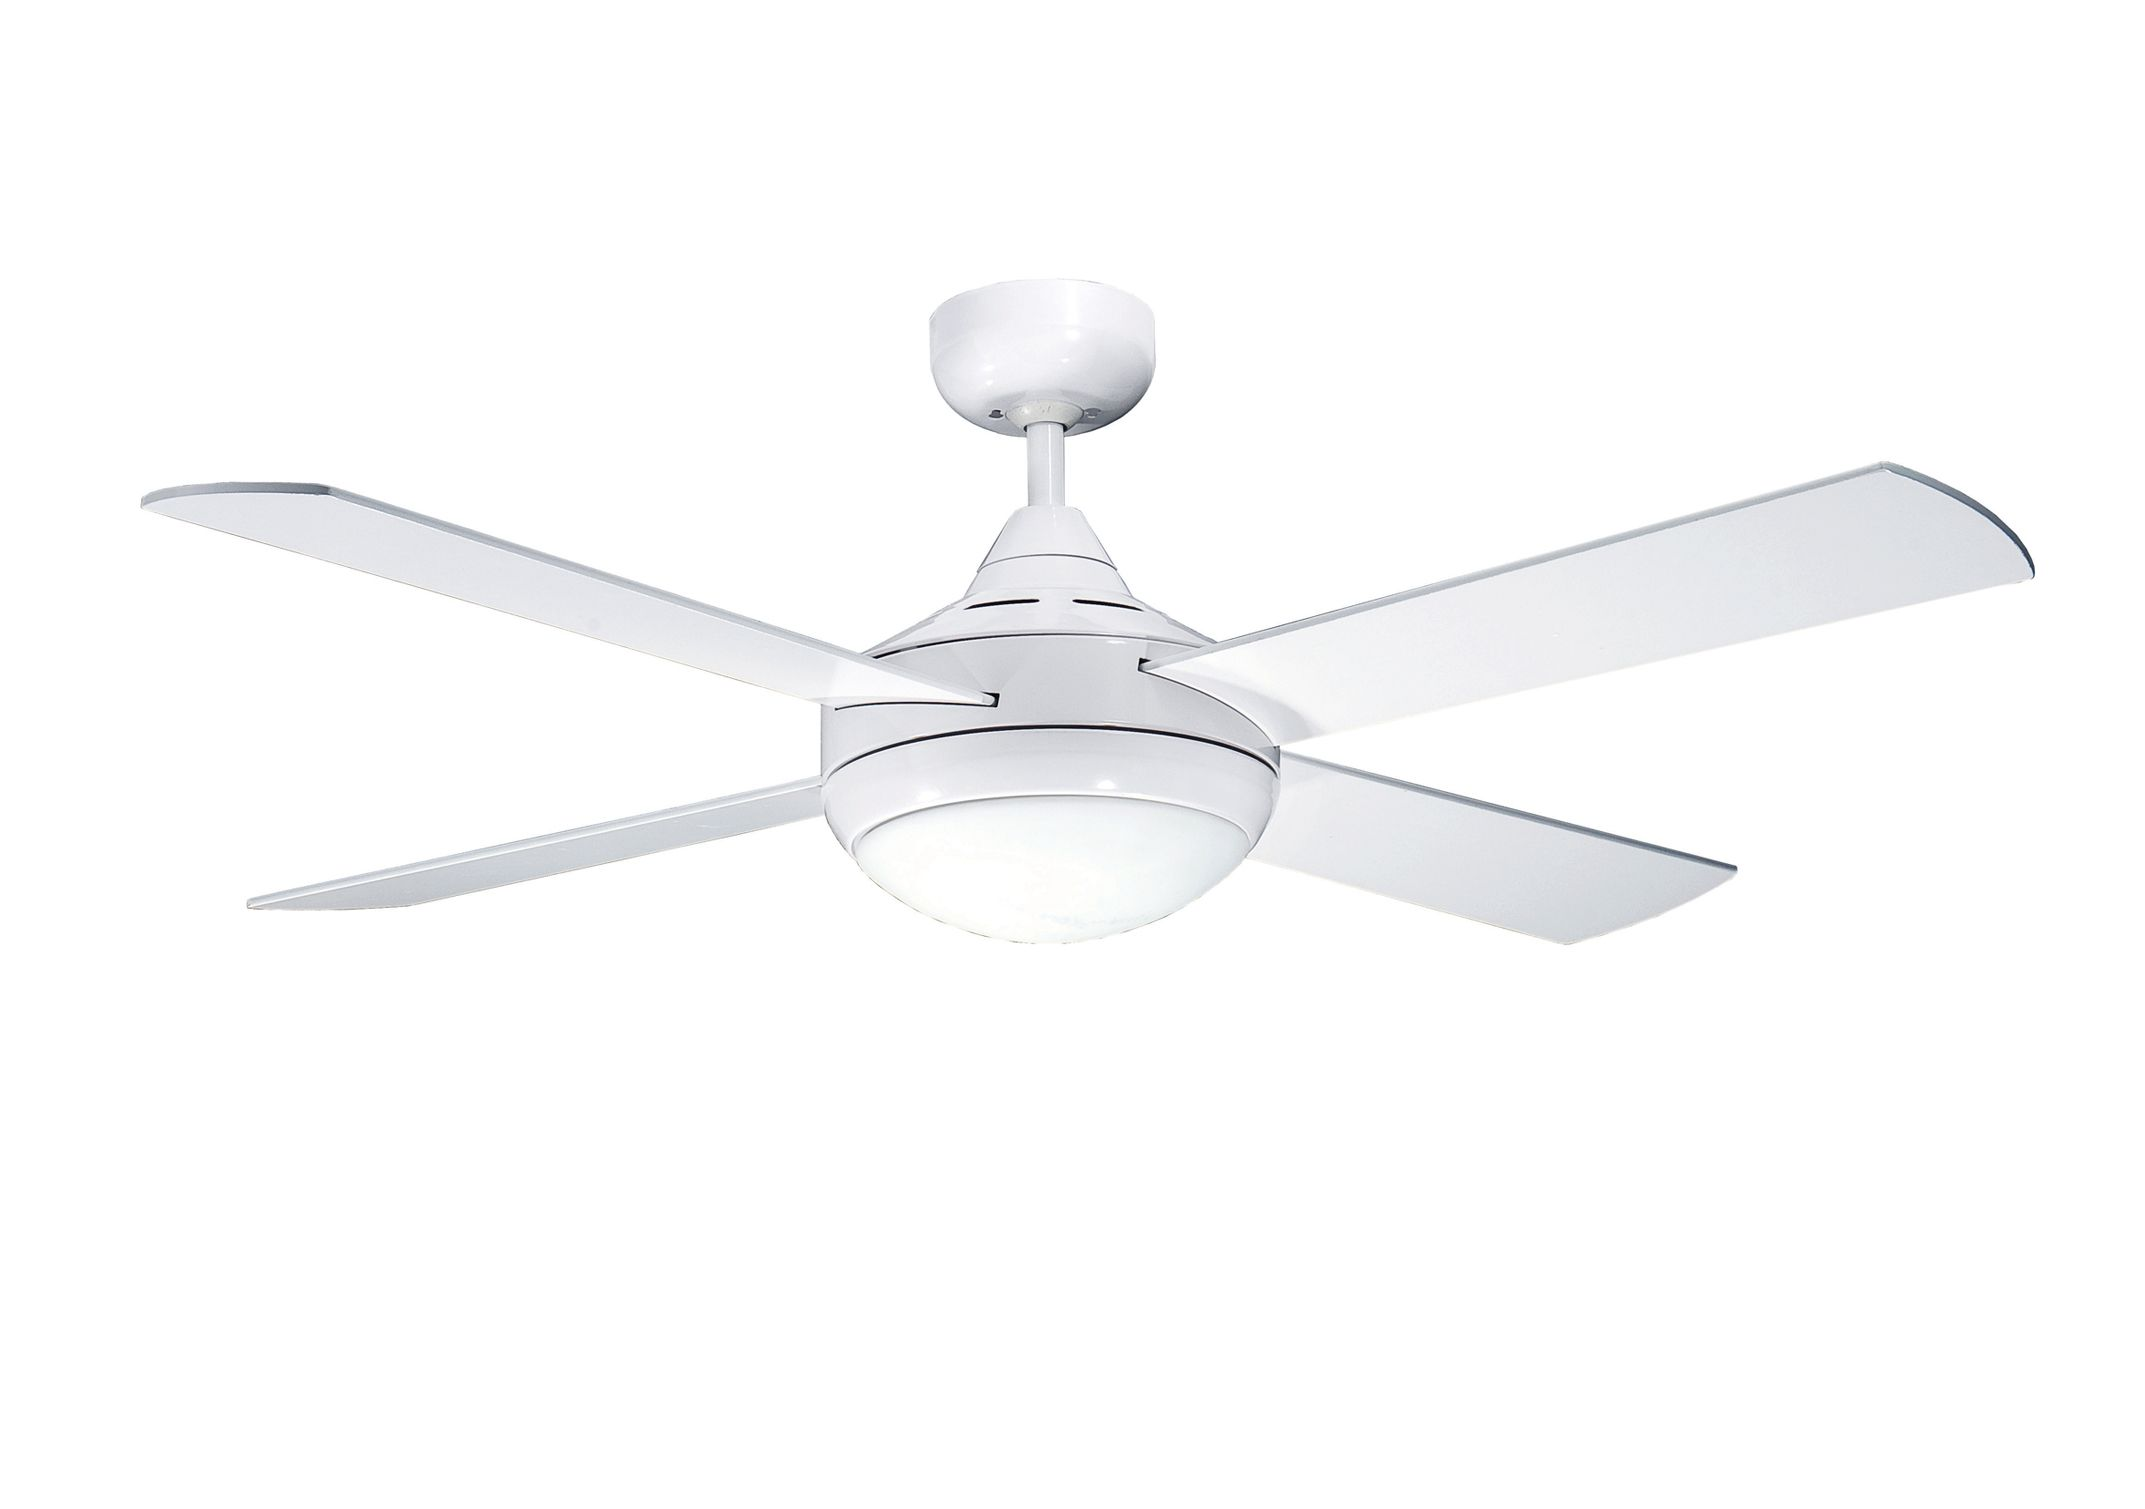 Pin By Martec Australia On Martec Ceiling Fans Ceiling Fan Ceiling Fan